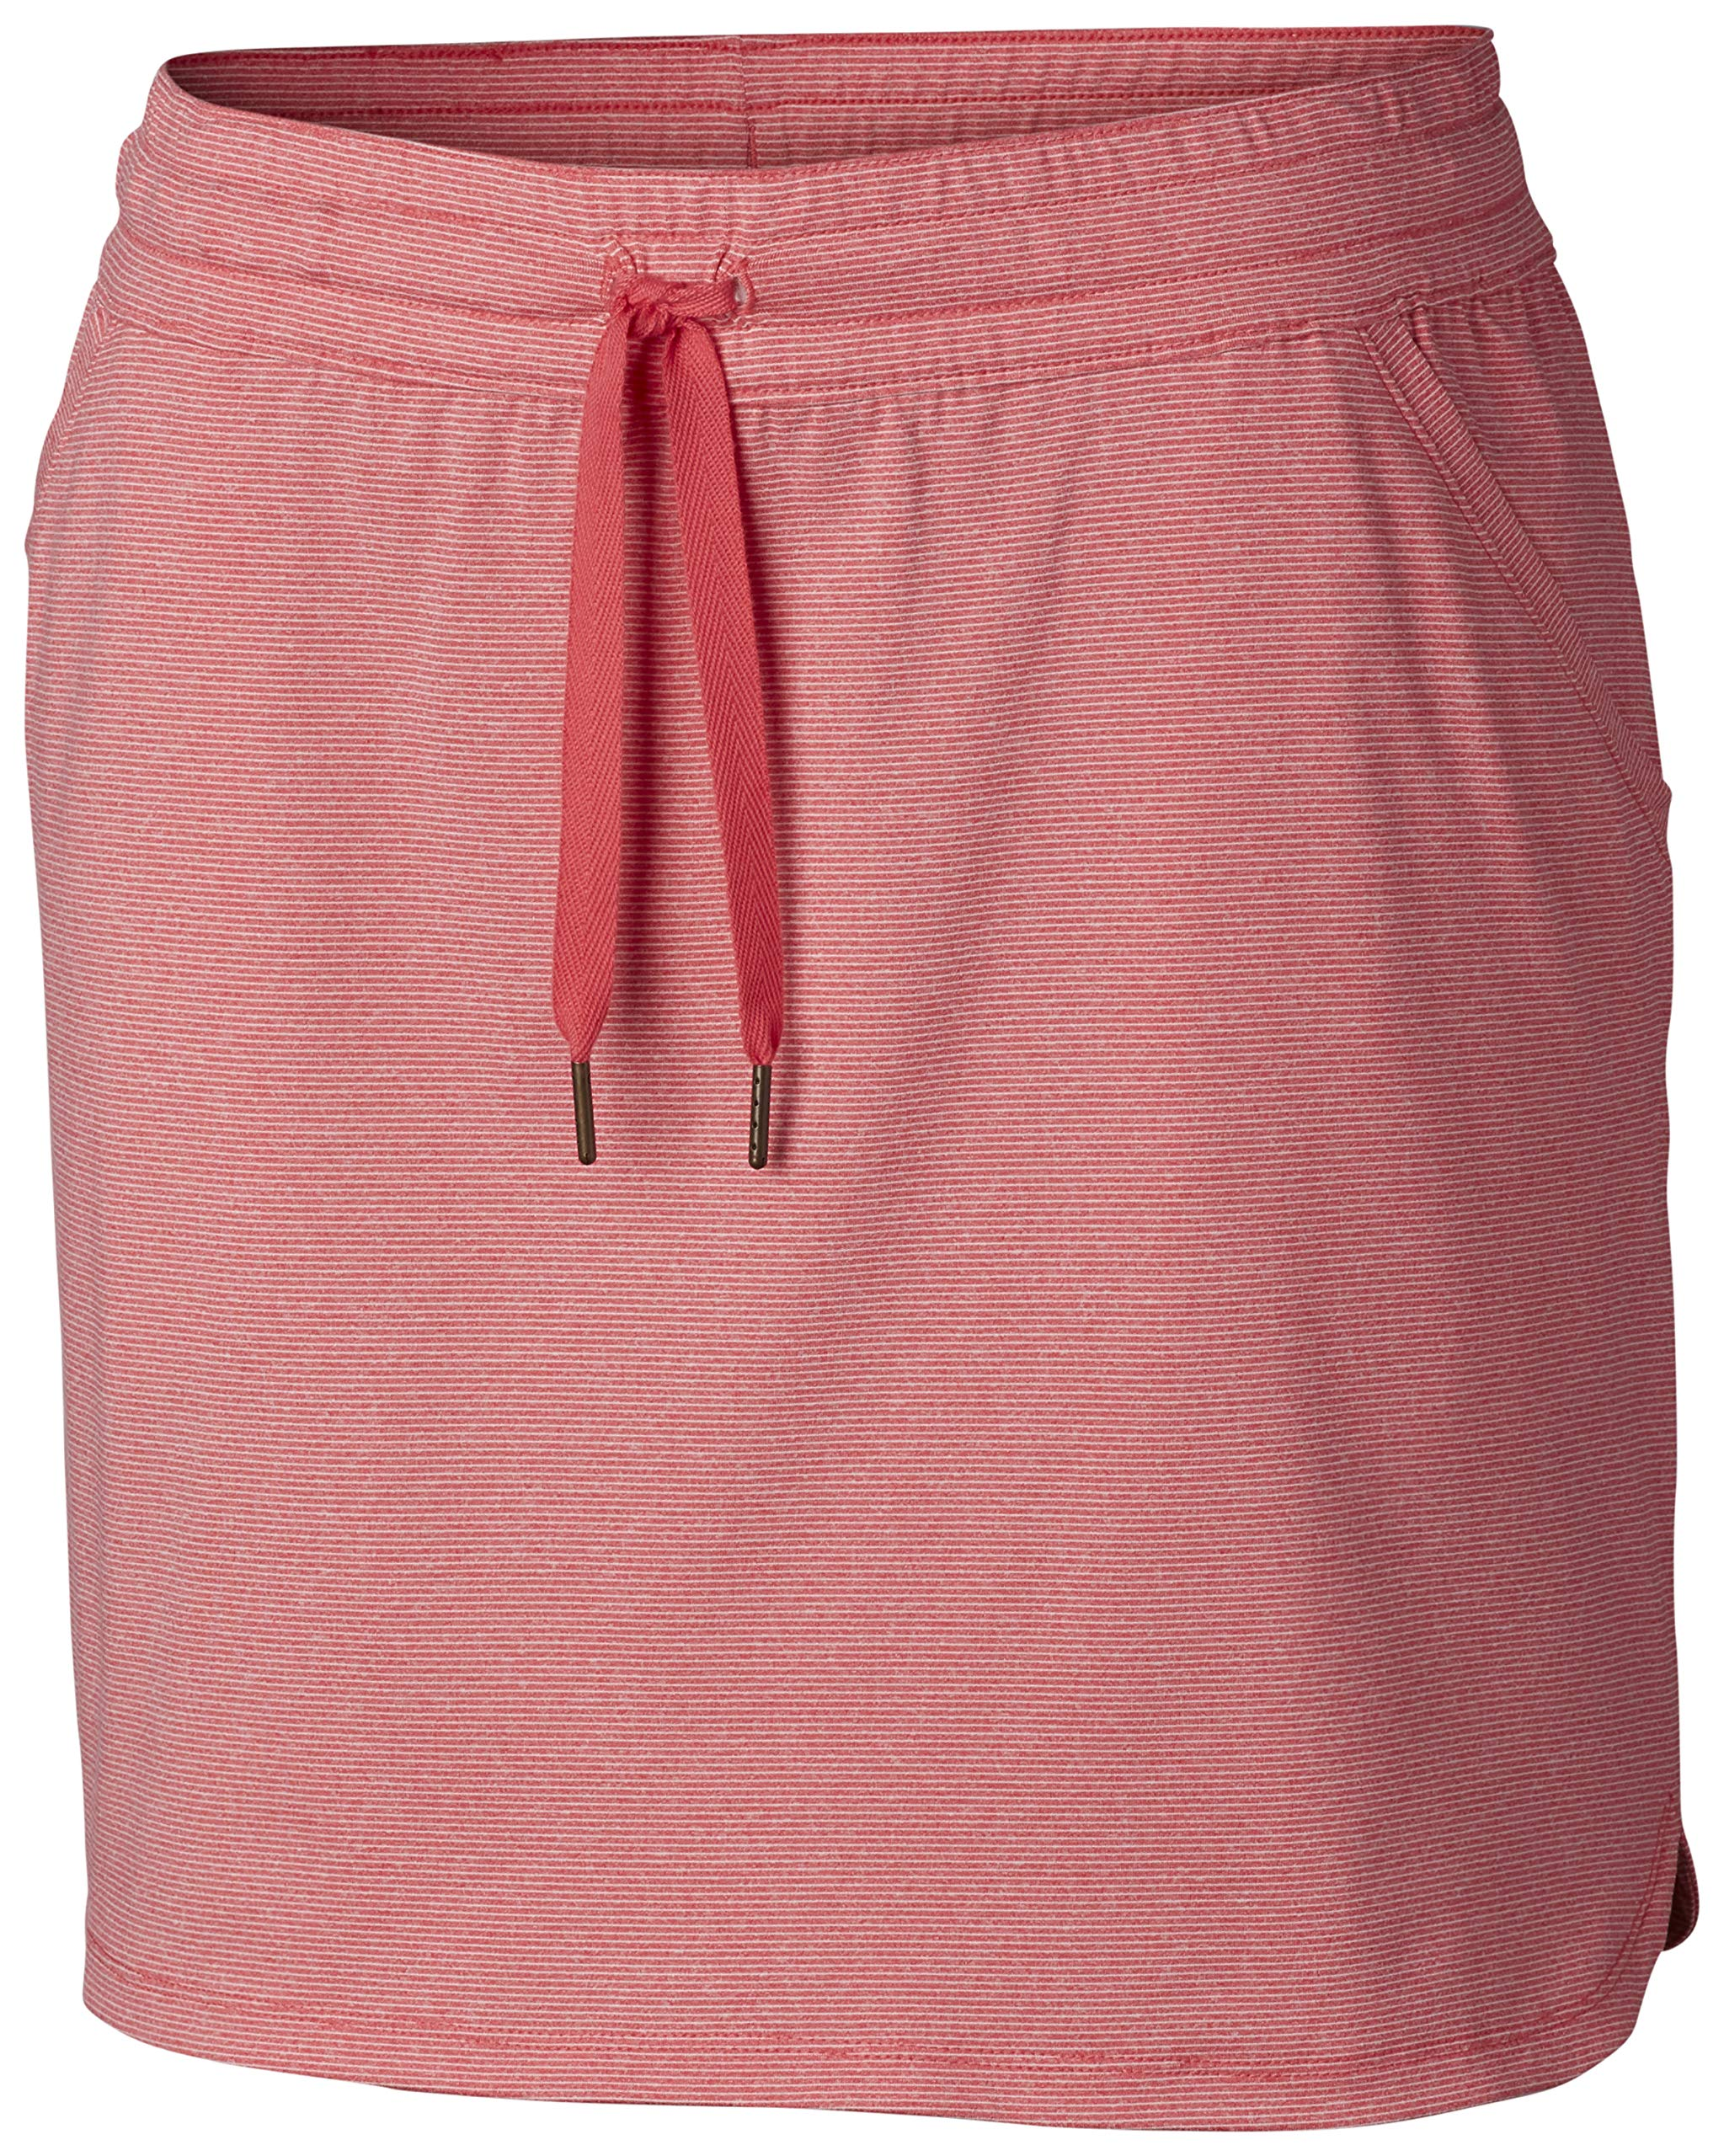 Columbia Women's Reel Relaxed Skirt, Bright Geranium, Small by Columbia